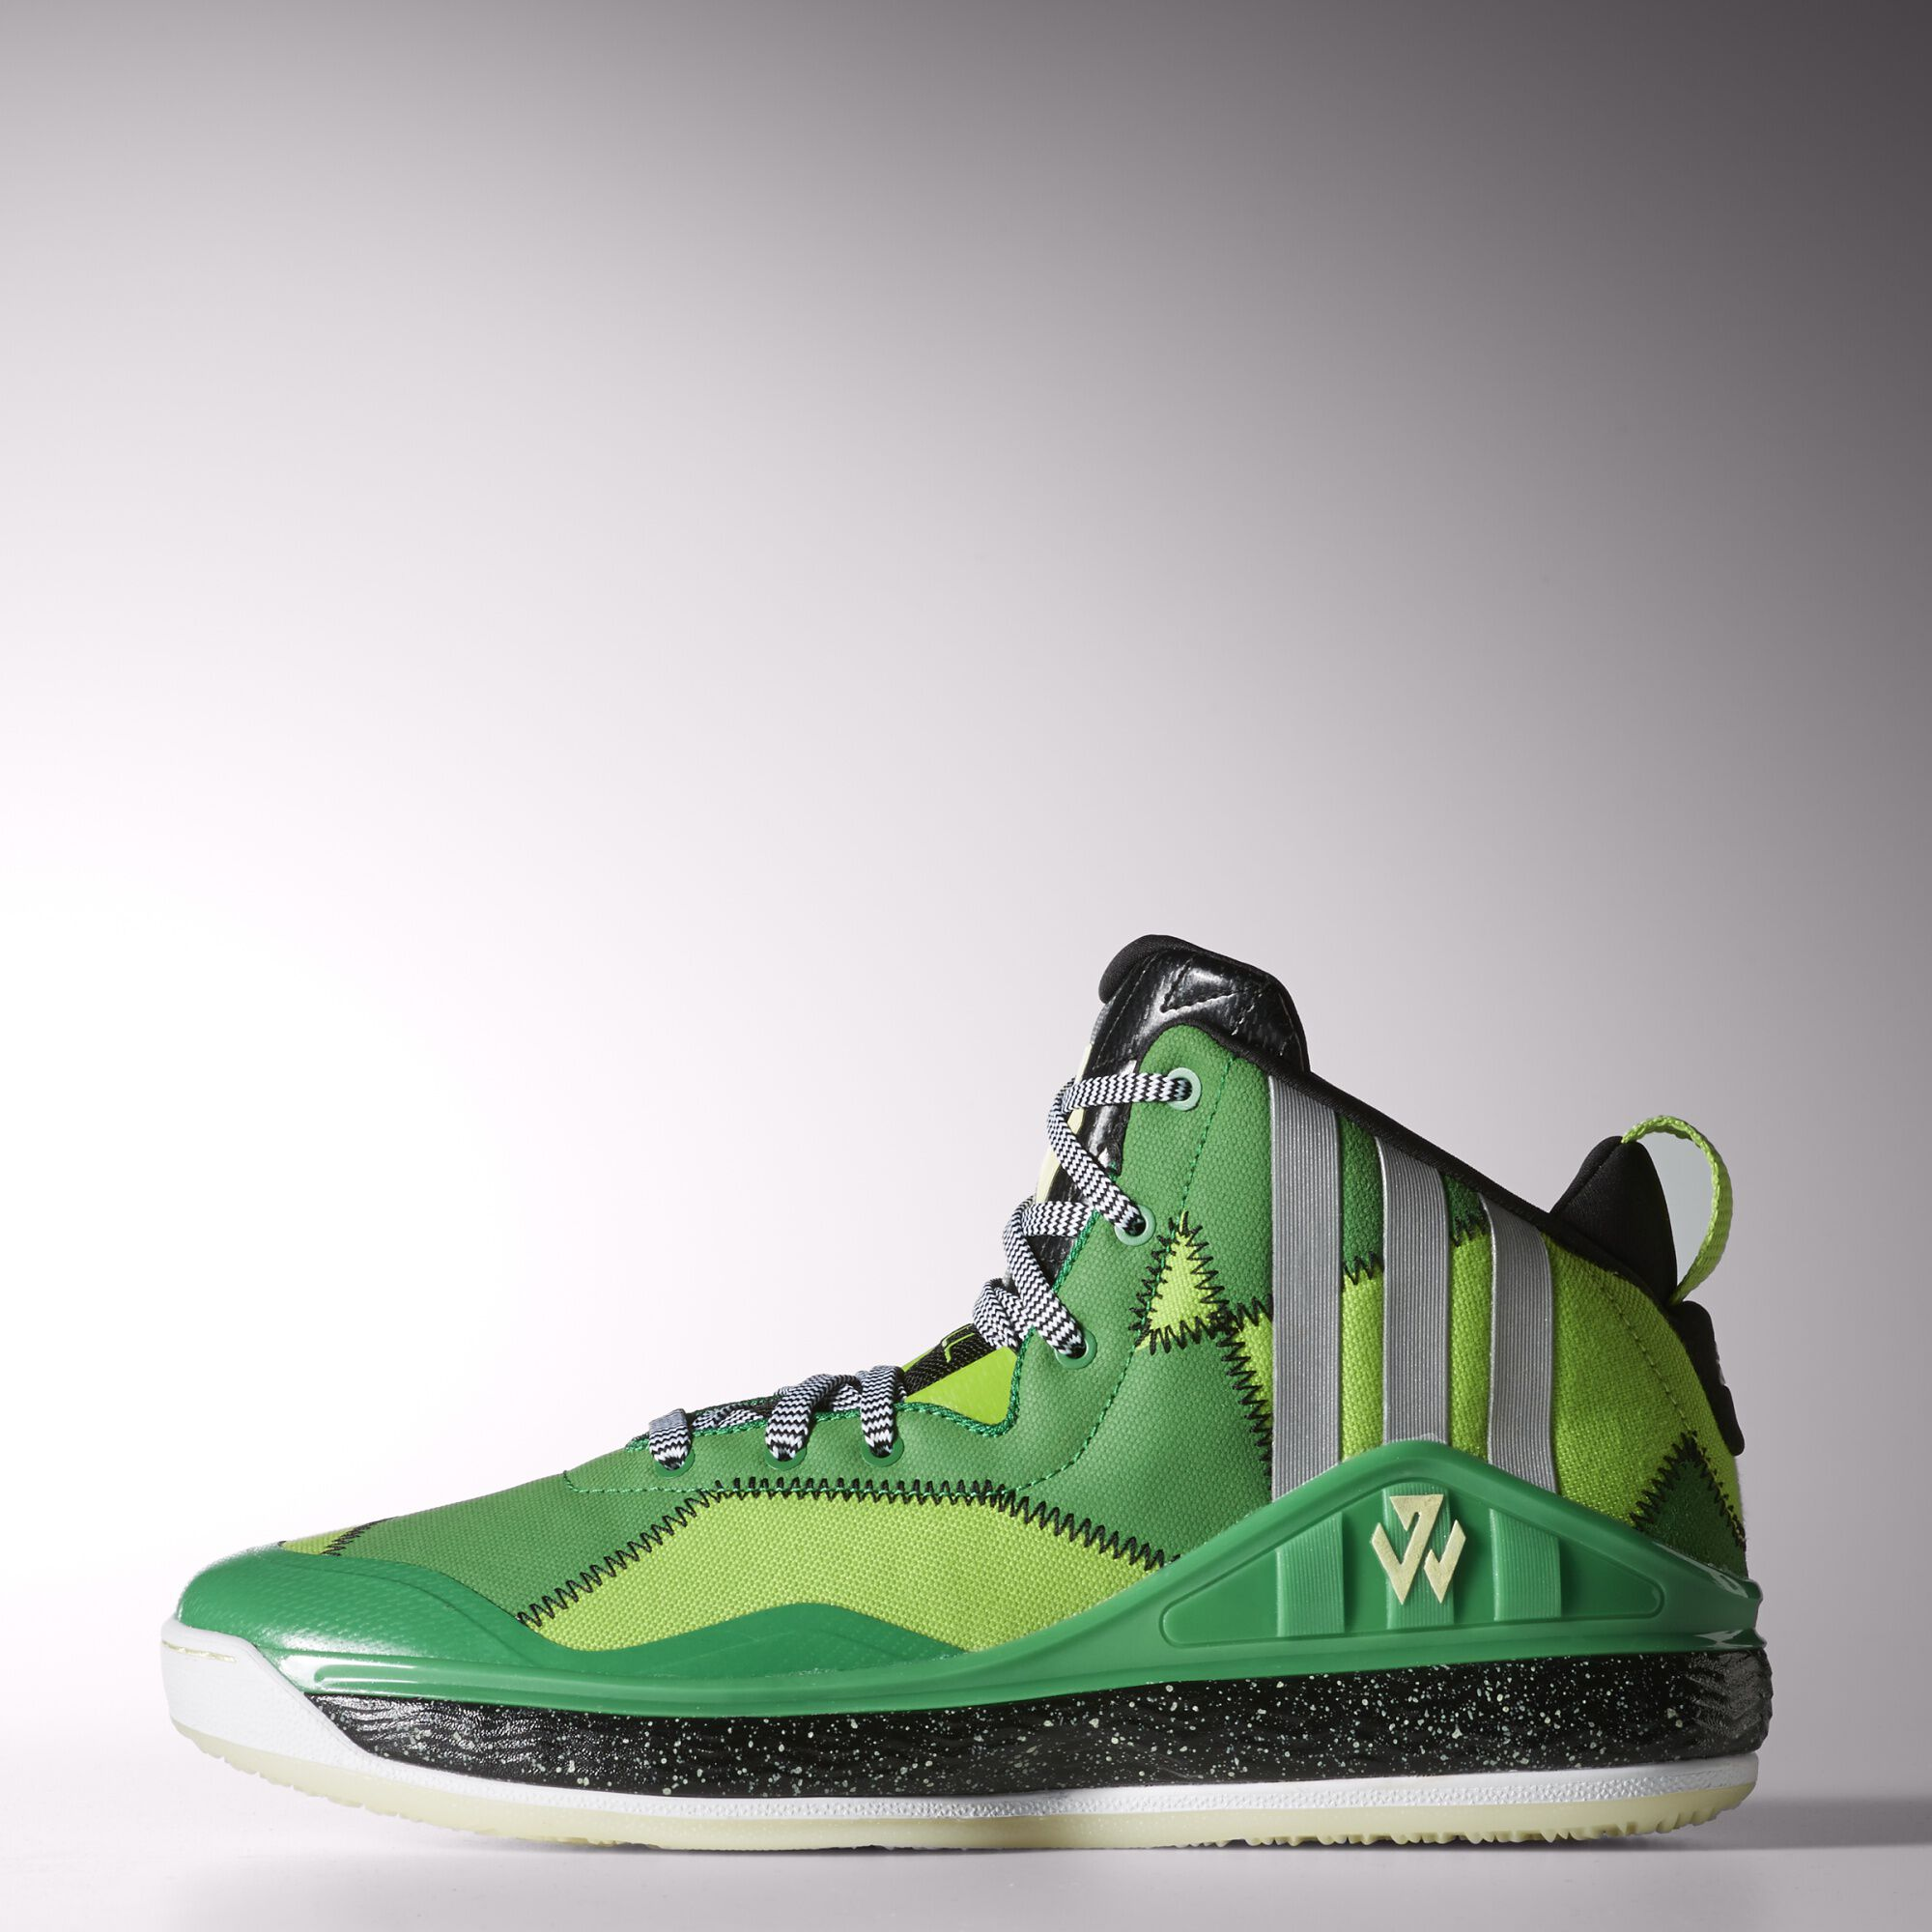 d rose 2014 shoes on sale   OFF70% Discounted 8f9b331f54